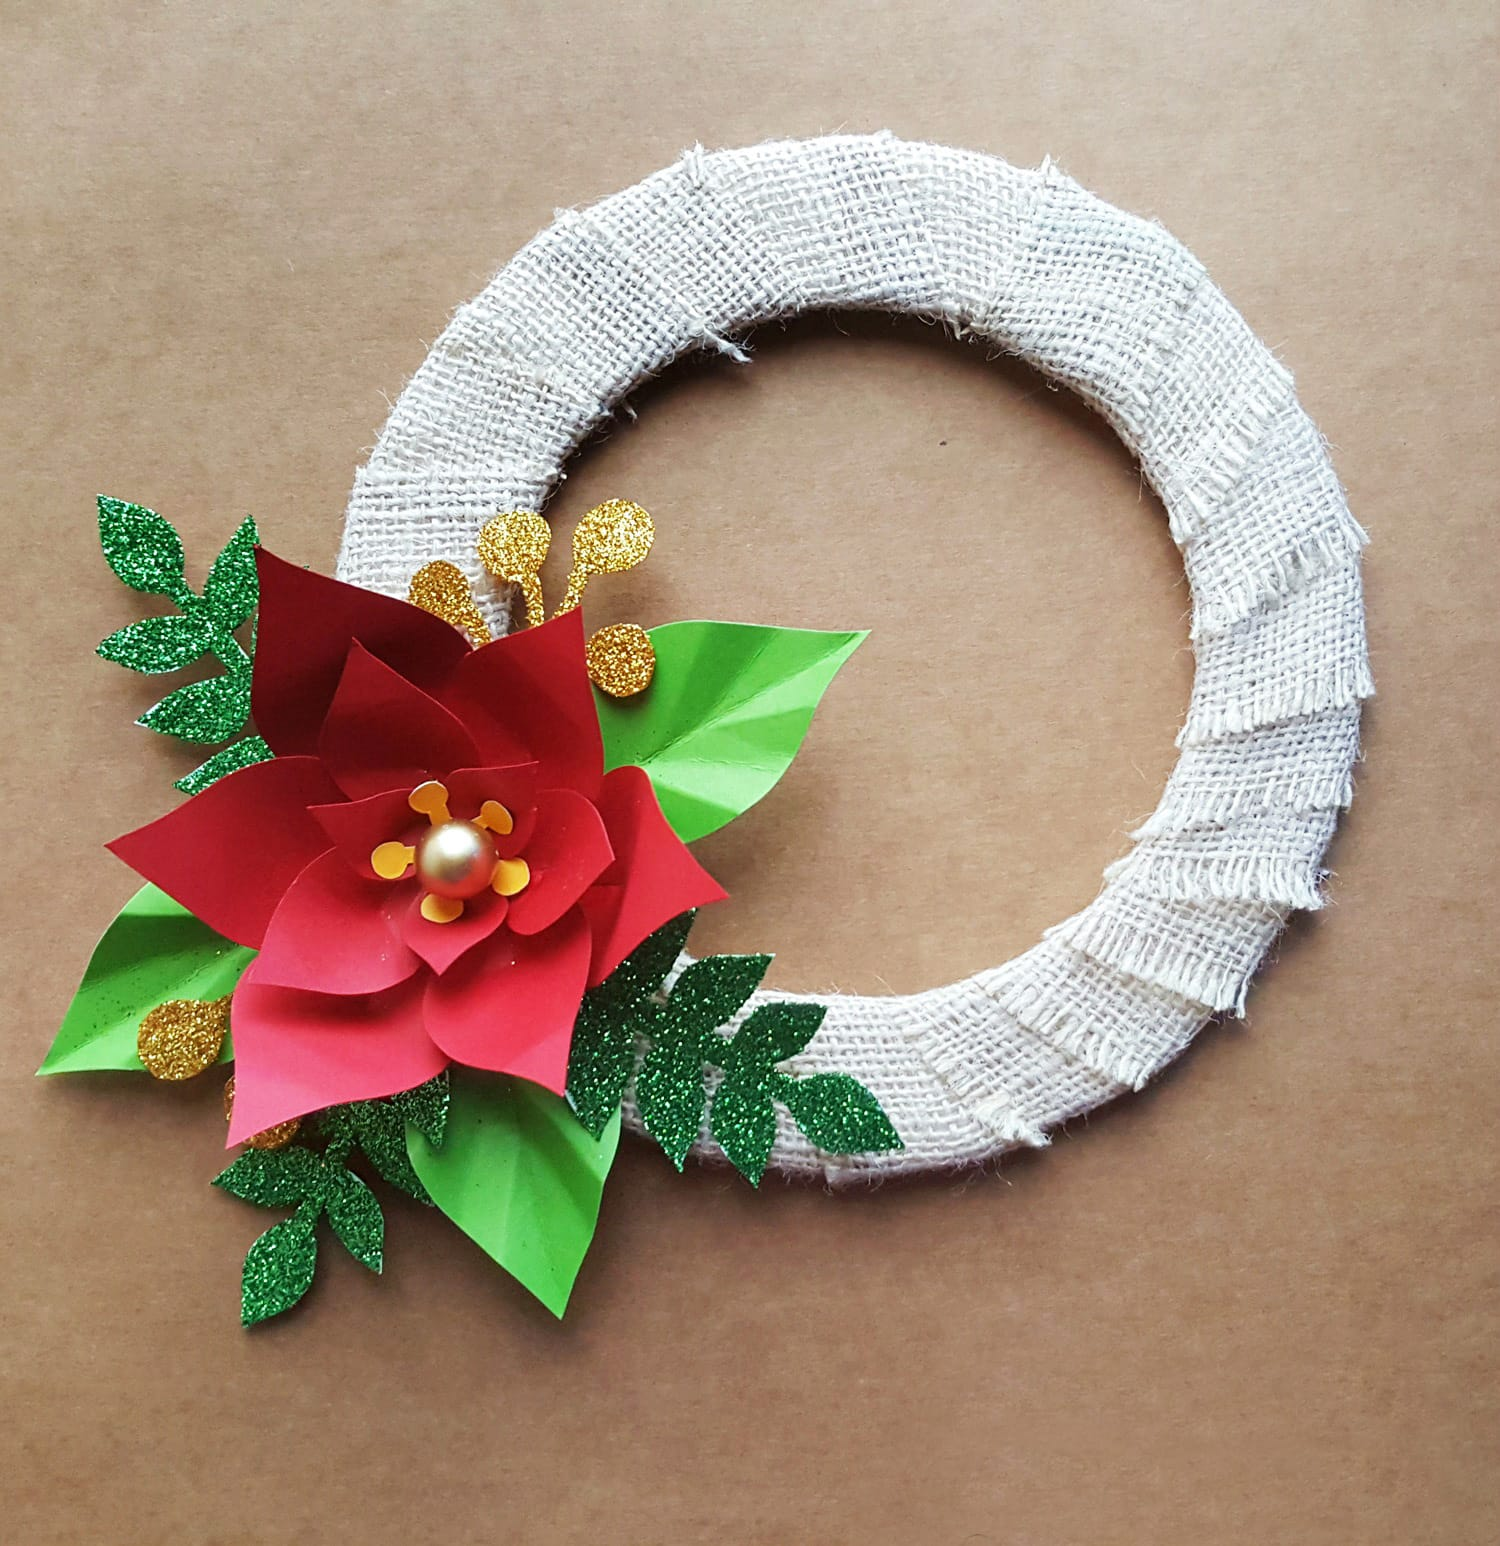 Easy Christmas Crafts For Kids Homemade Poinsettia Wreath